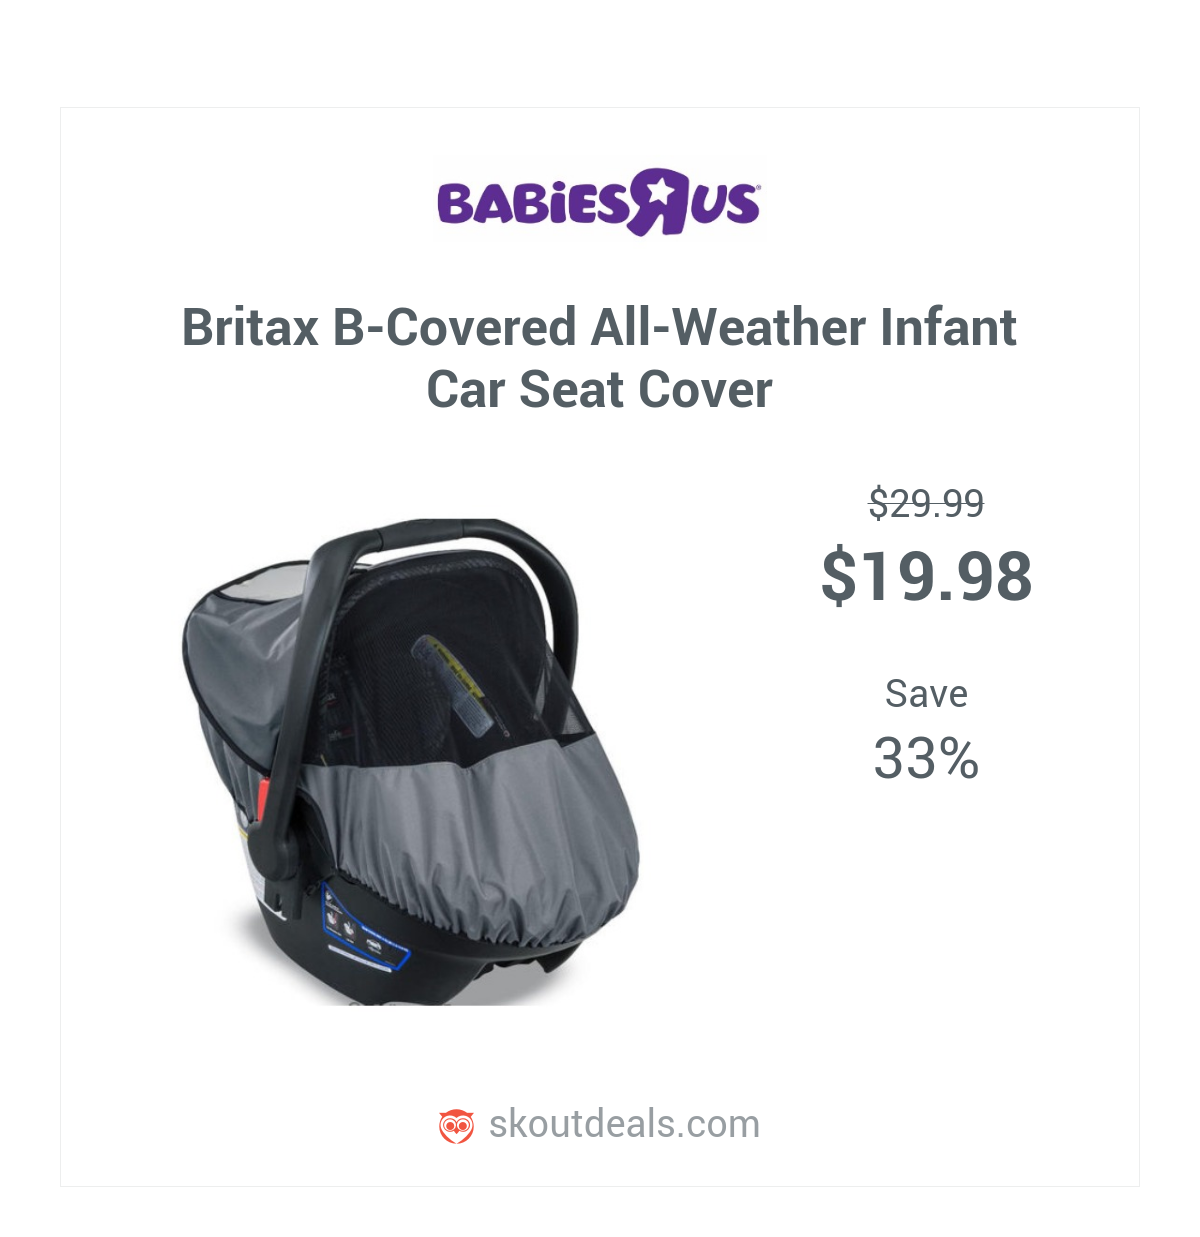 The Britax B-Covered All-Weather Infant Car Seat Cover provides protection from harmful  sc 1 st  Pinterest & The Britax B-Covered All-Weather Infant Car Seat Cover provides ...